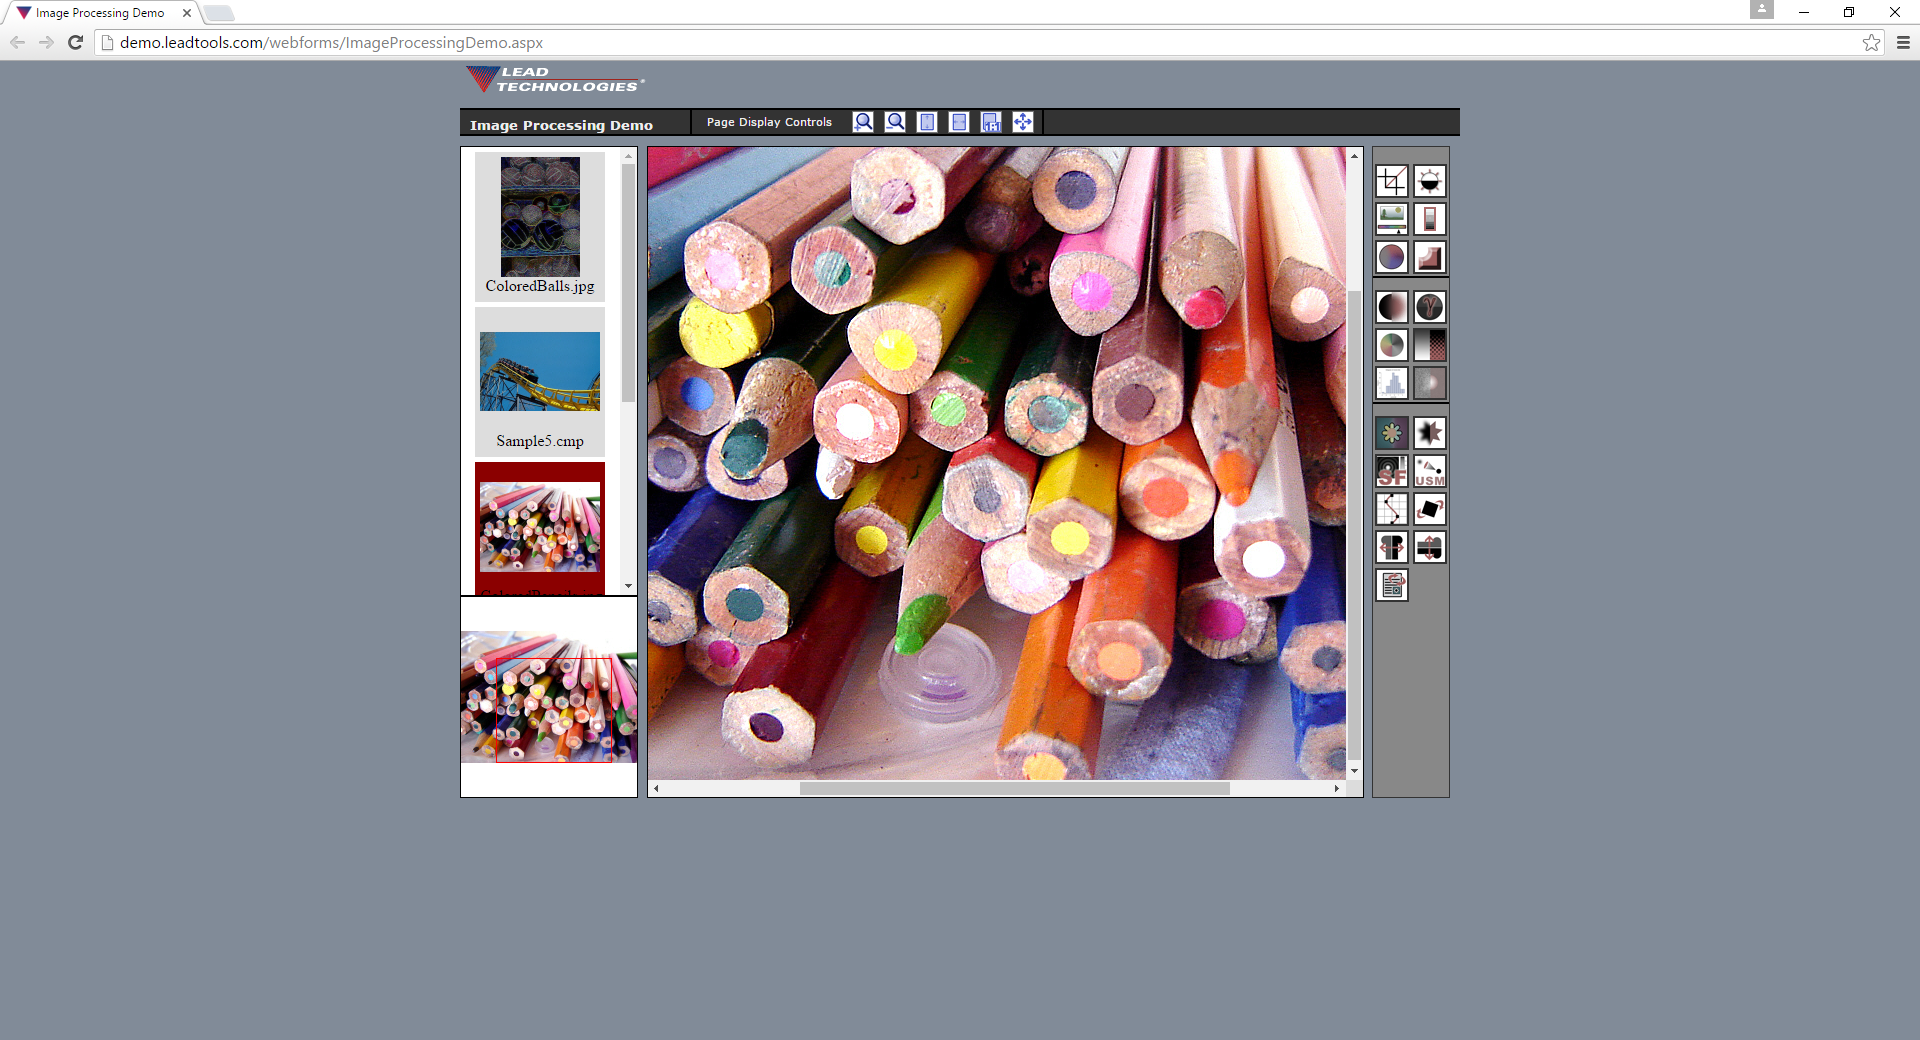 Web Service Image Processing 2